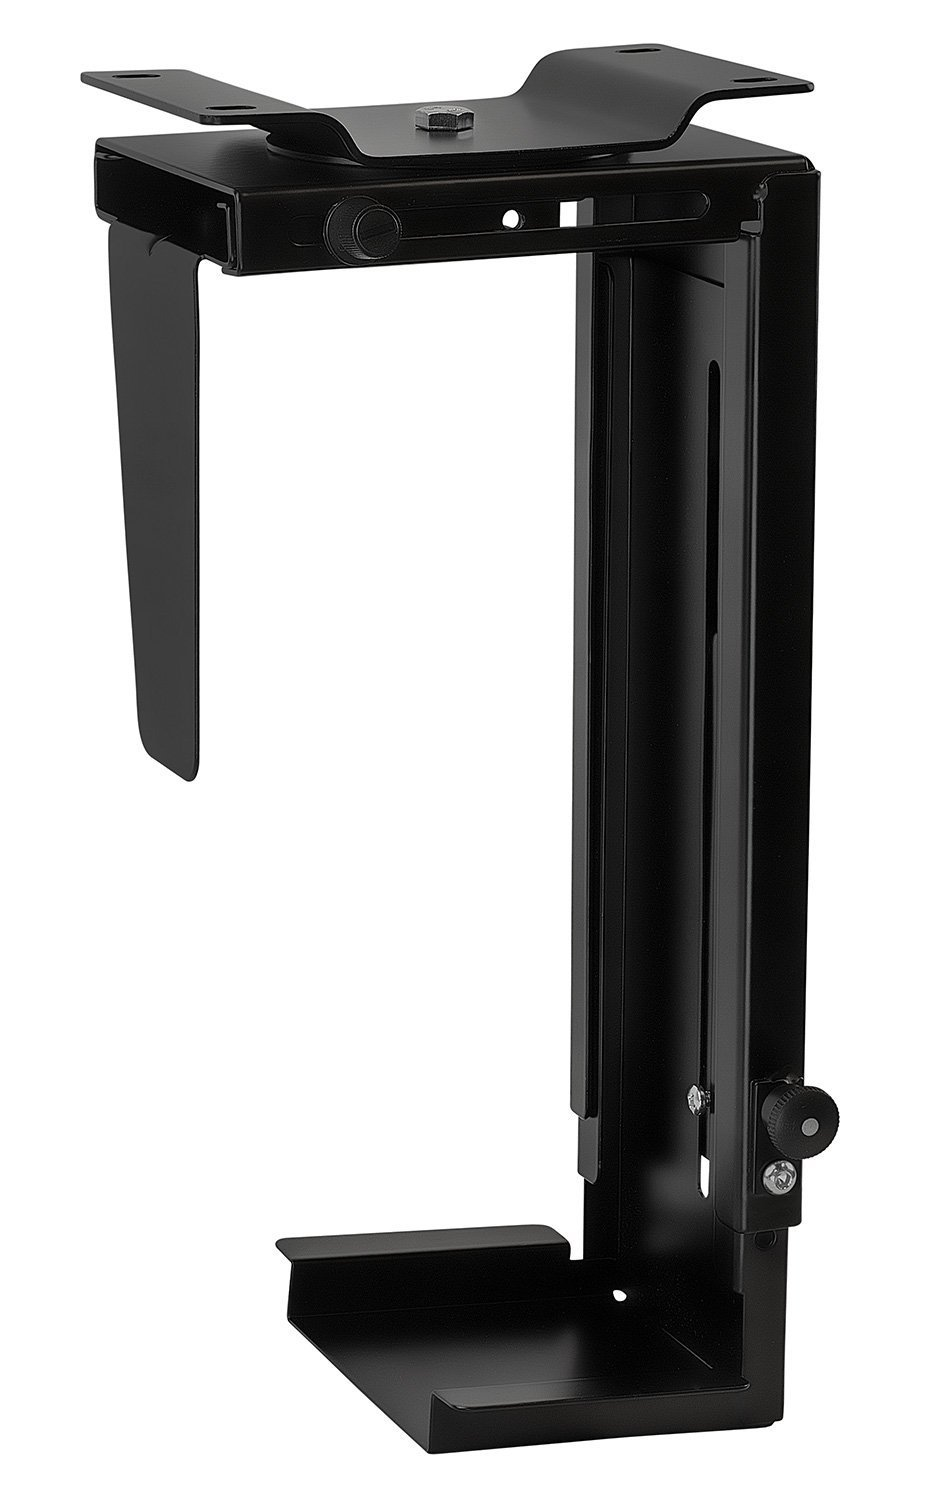 CPU Under Desk Mount Bracket - Computer Tower Wall and Under Counter Holder, 360 Degree Swivel Adjustable Height and Width Wall-Mountable